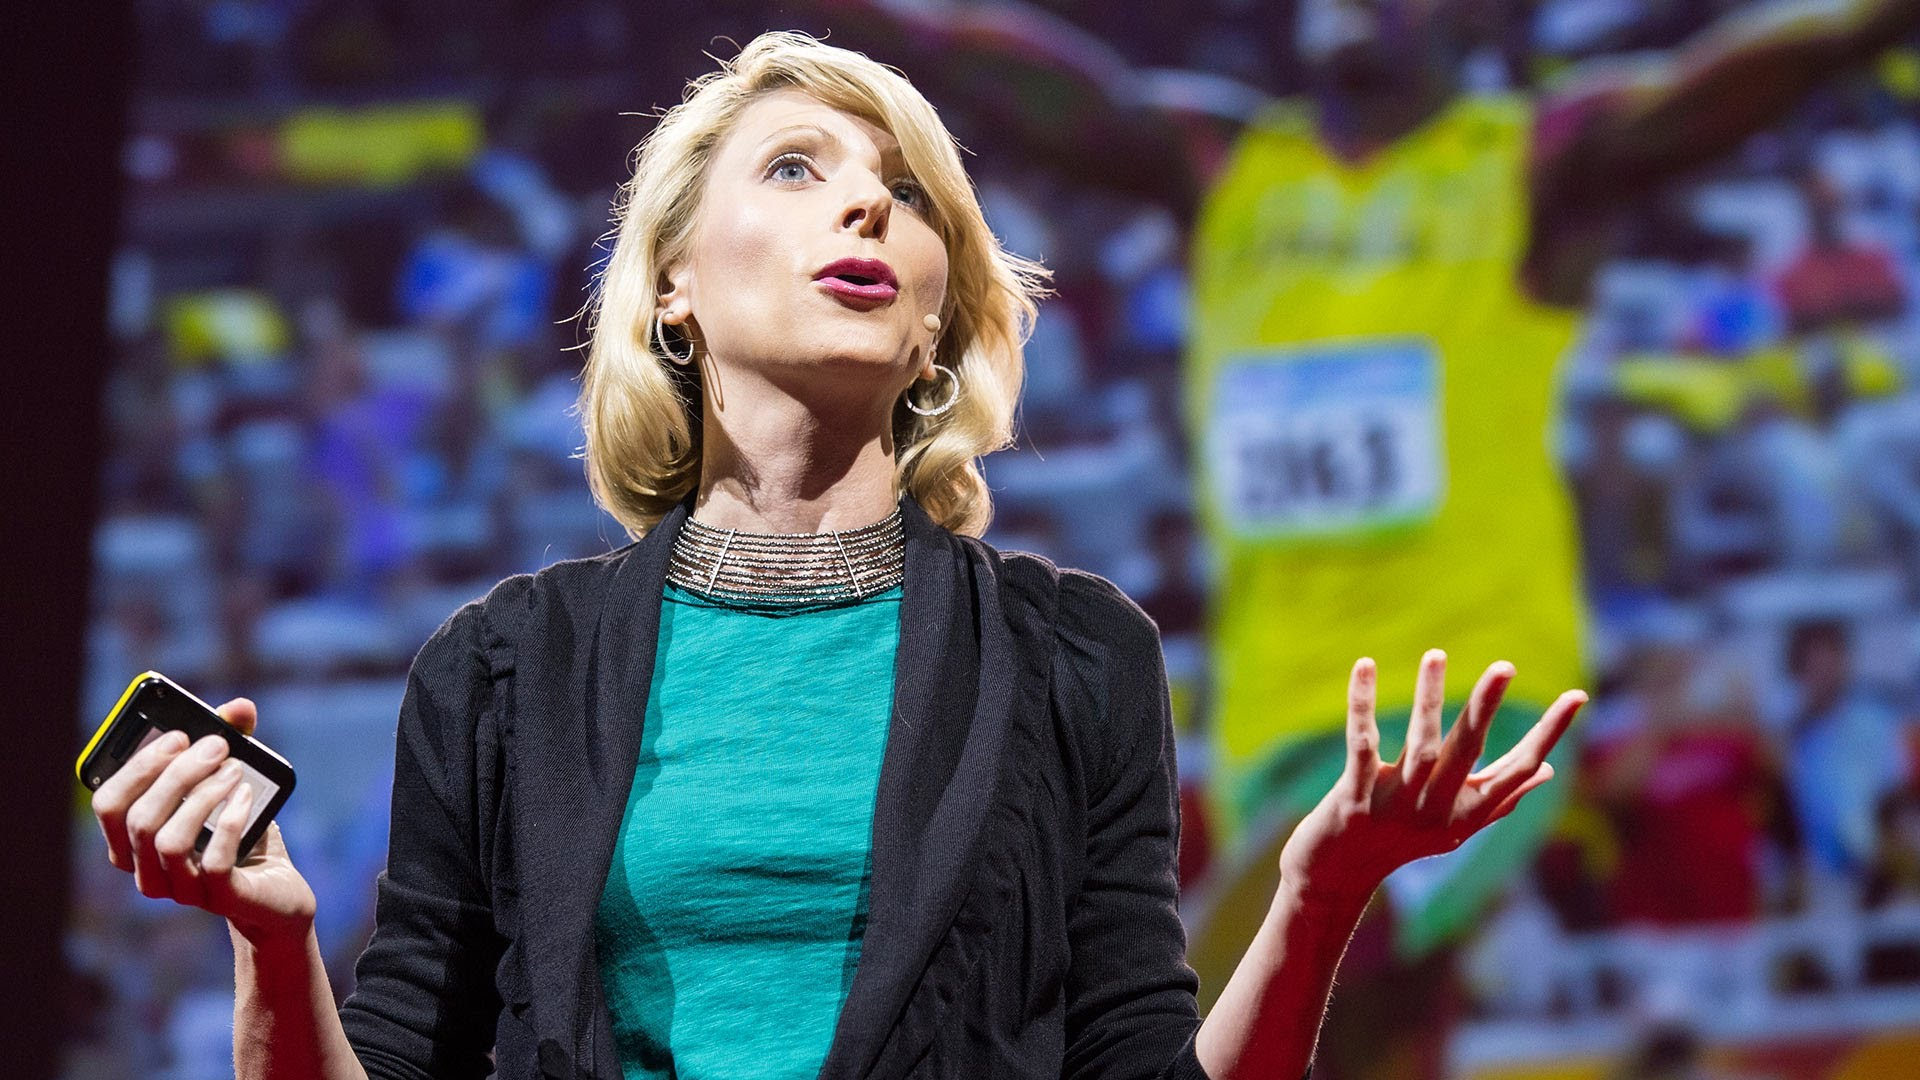 """Amy Cuddy chose a green top and a cool necklace to wear for her TED Talk, rather than a fancy dress. """"I wanted to be myself, not a red carpet version of myself.,"""" she tells The New York Times. Photo: James Duncan Davidson/TED"""